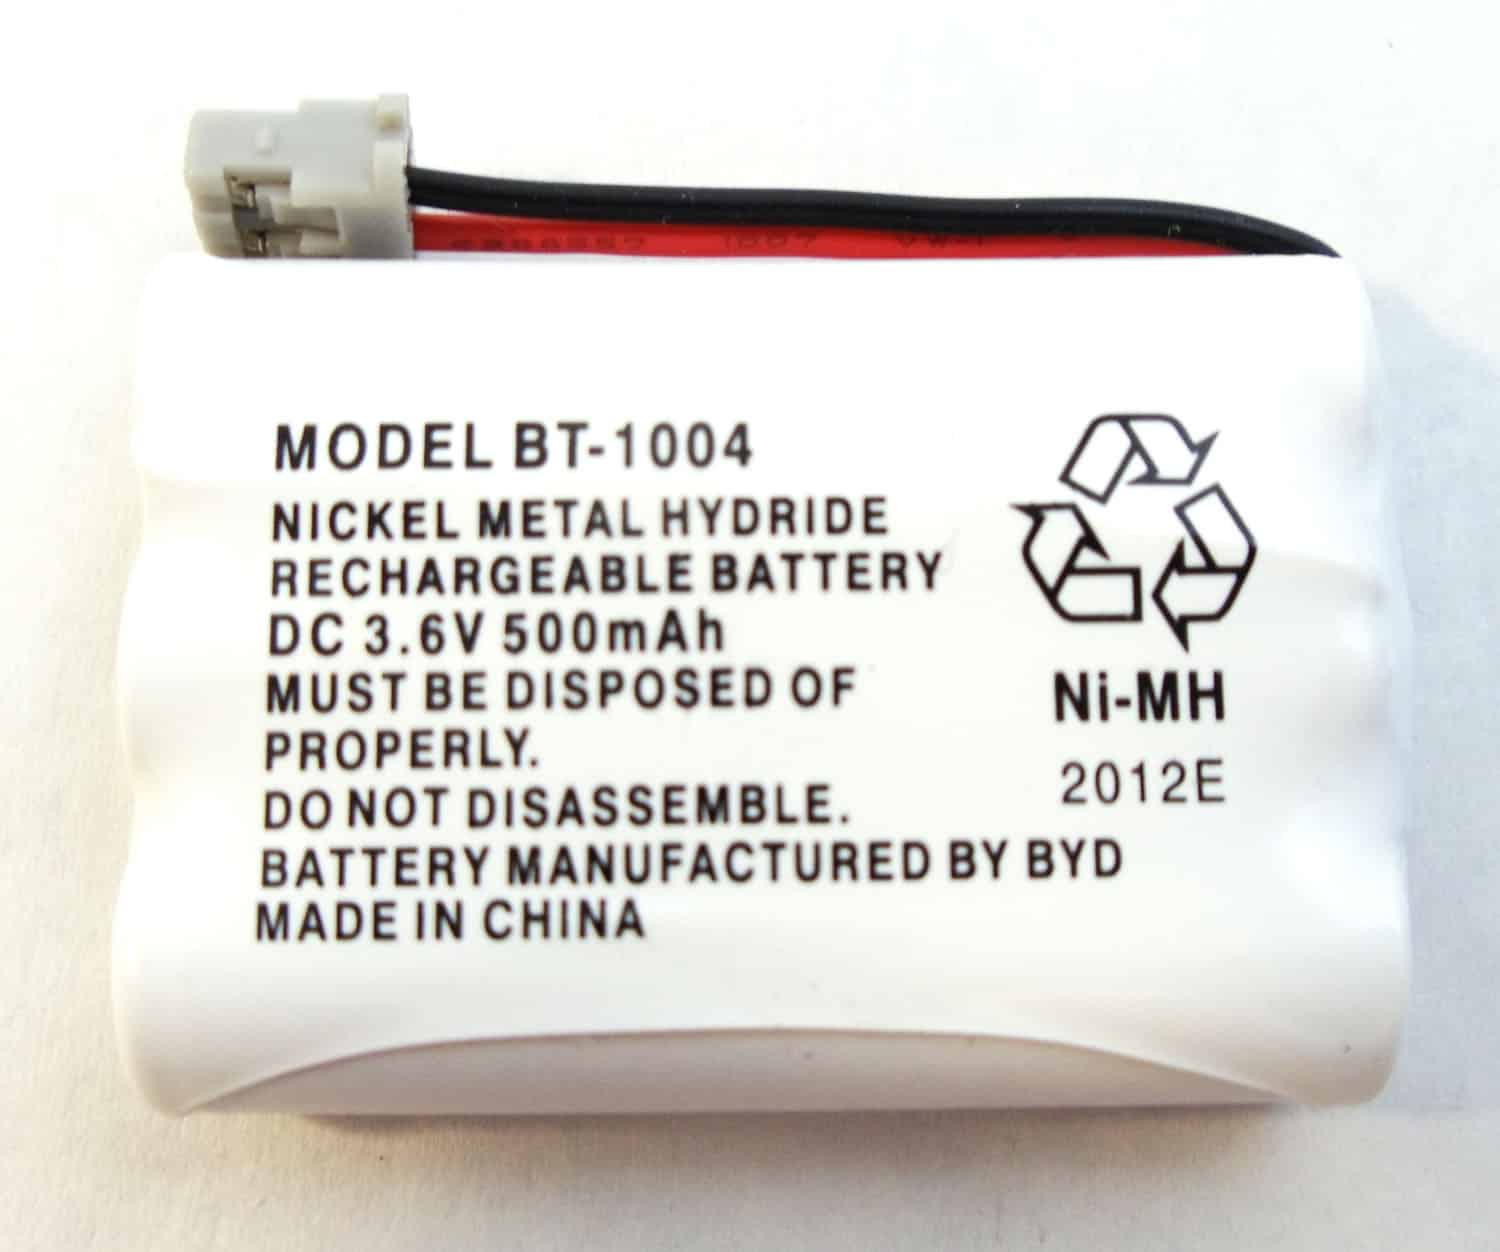 BT1004 - Uniden Nickel Hydride Replacement Battery For Dxt736